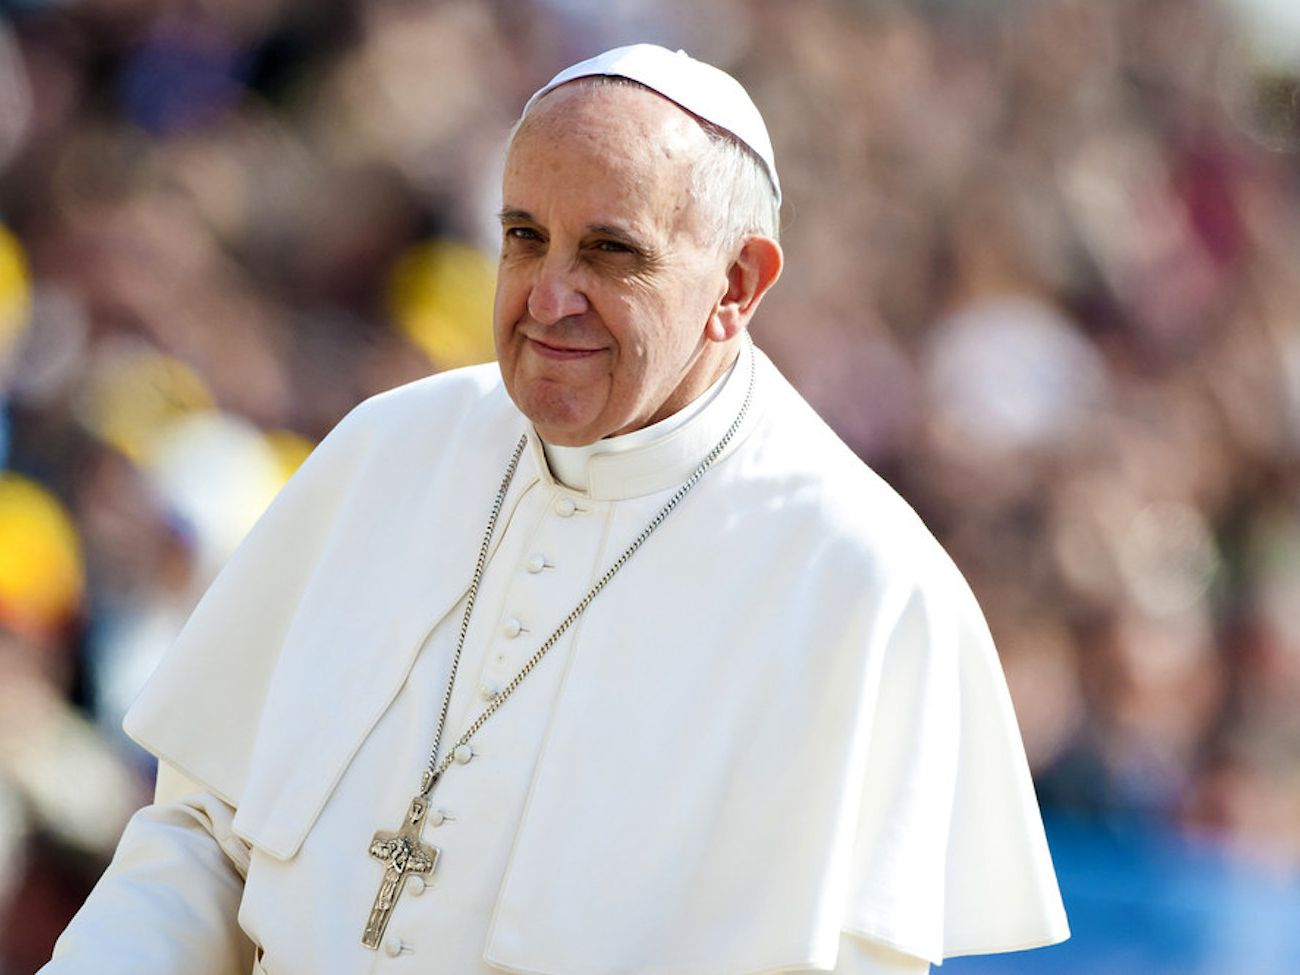 POPE FRANCIS TRADITION IN TRANSITION